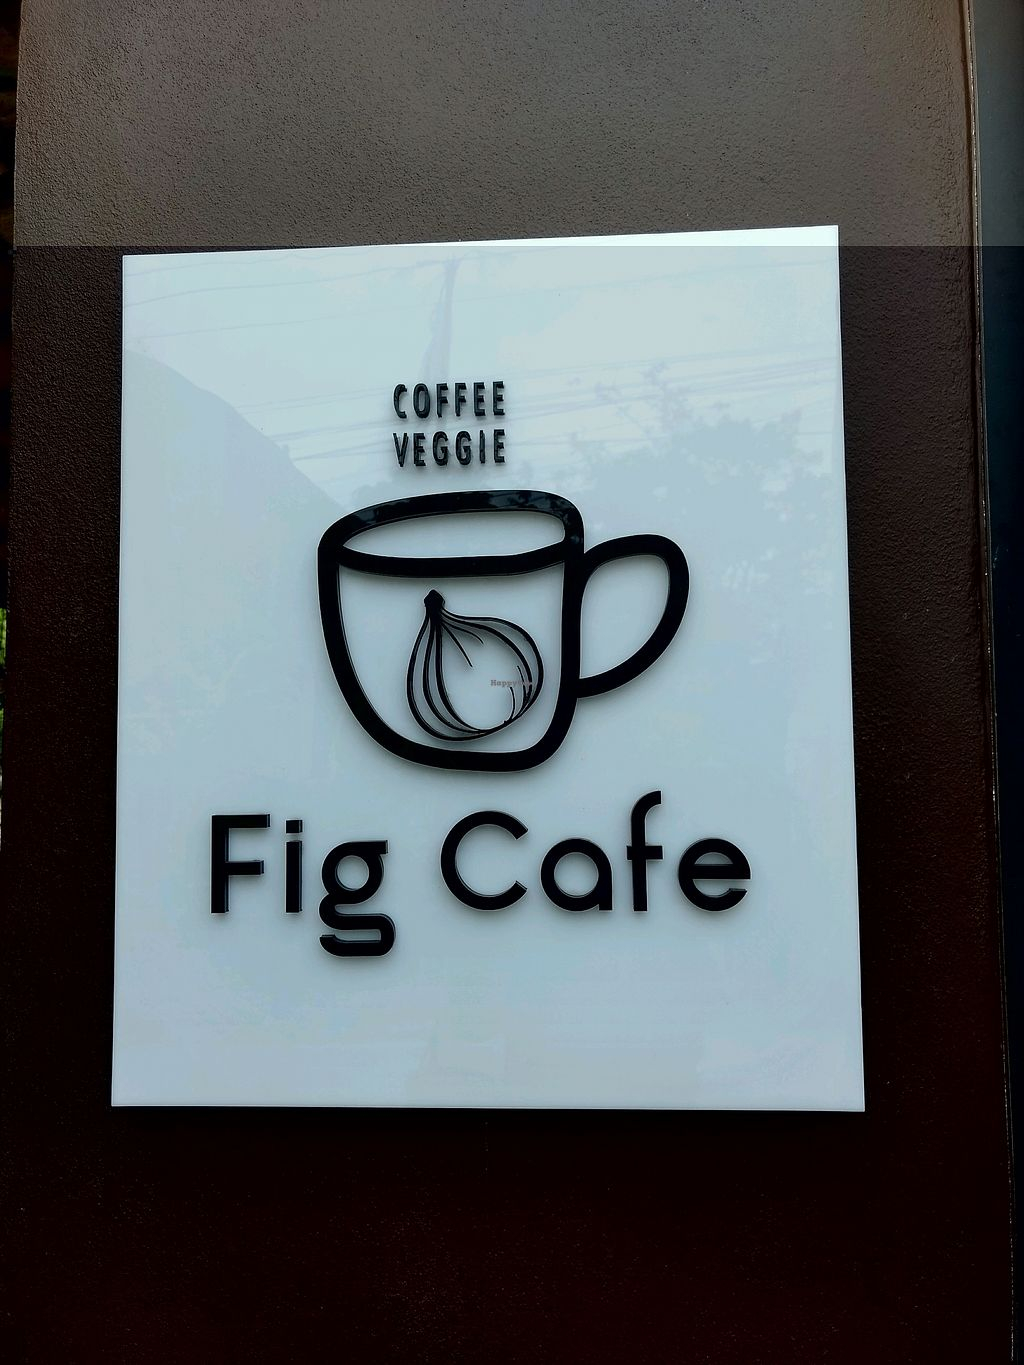 """Photo of Fig Cafe  by <a href=""""/members/profile/Oliviarh15"""">Oliviarh15</a> <br/>Fig Cafe <br/> January 29, 2018  - <a href='/contact/abuse/image/109941/352276'>Report</a>"""